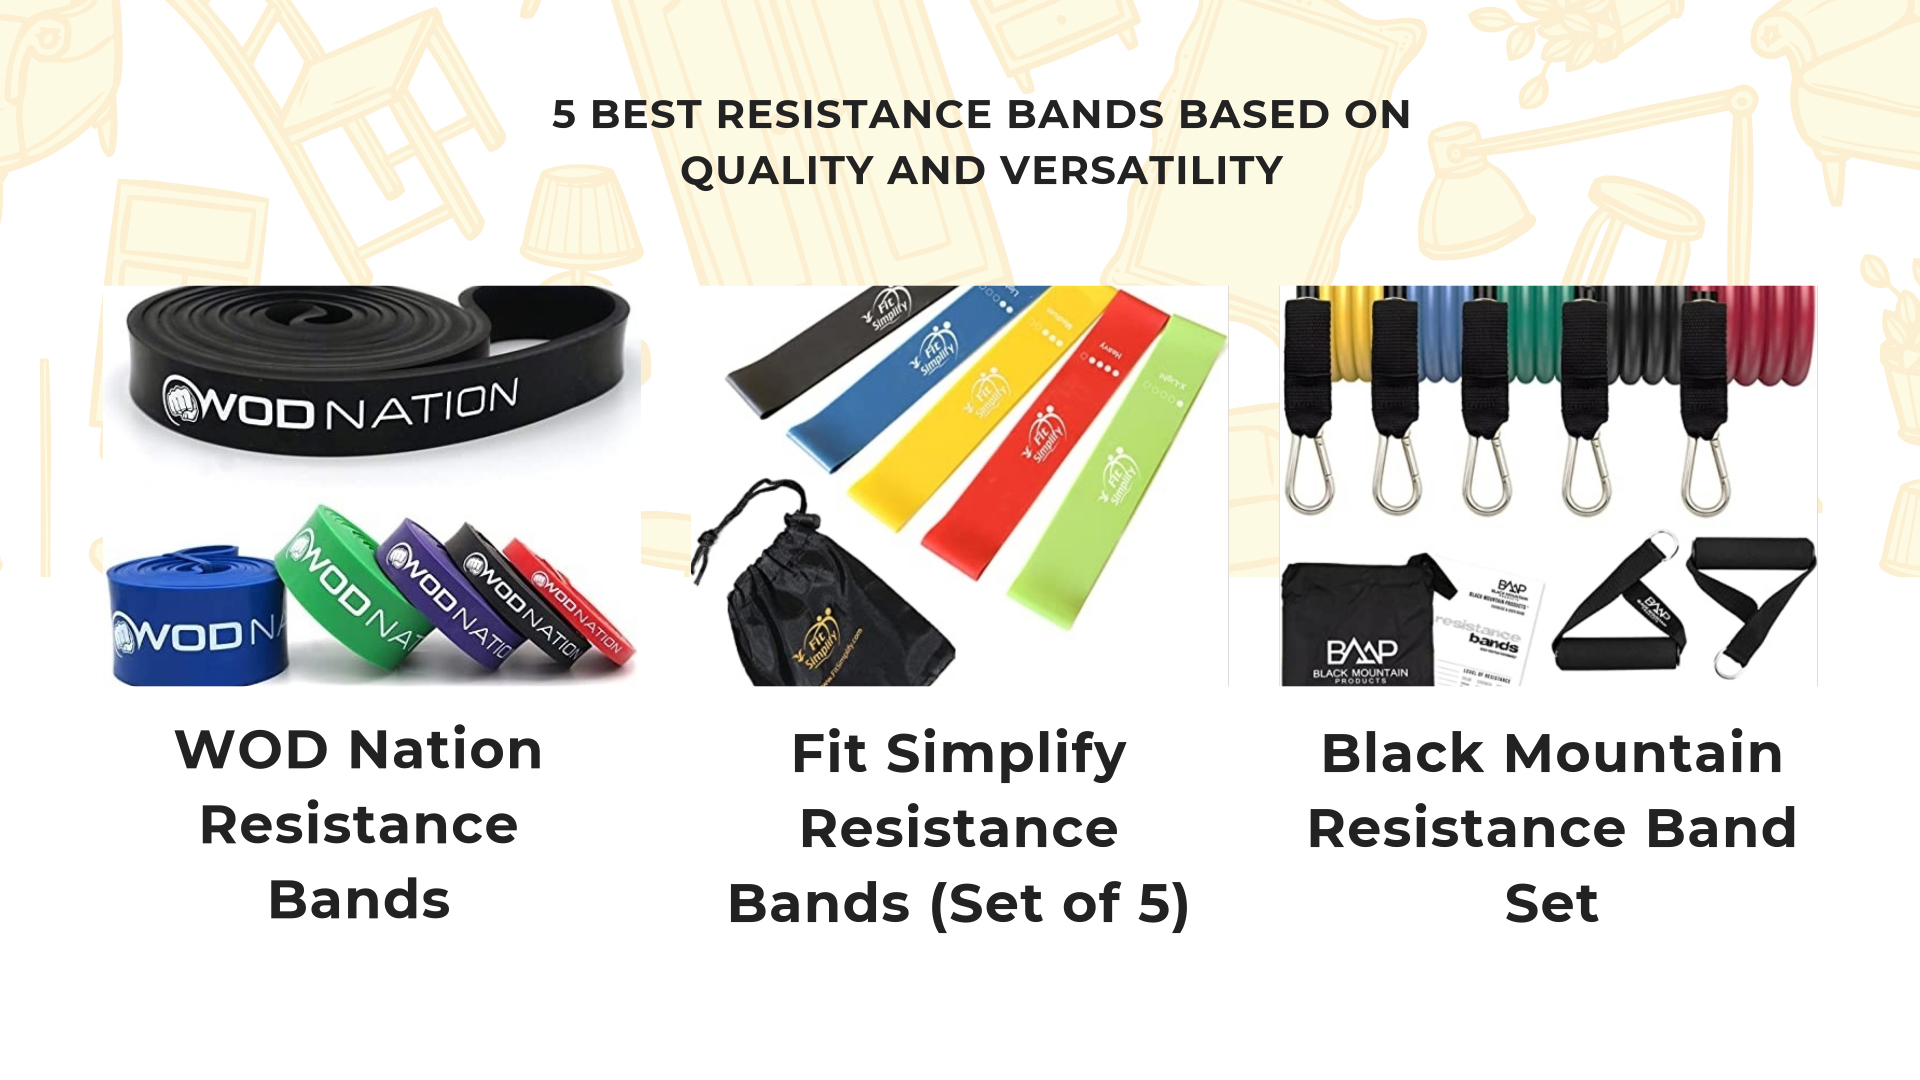 5 Best Resistance Bands Based On Quality And Versatility